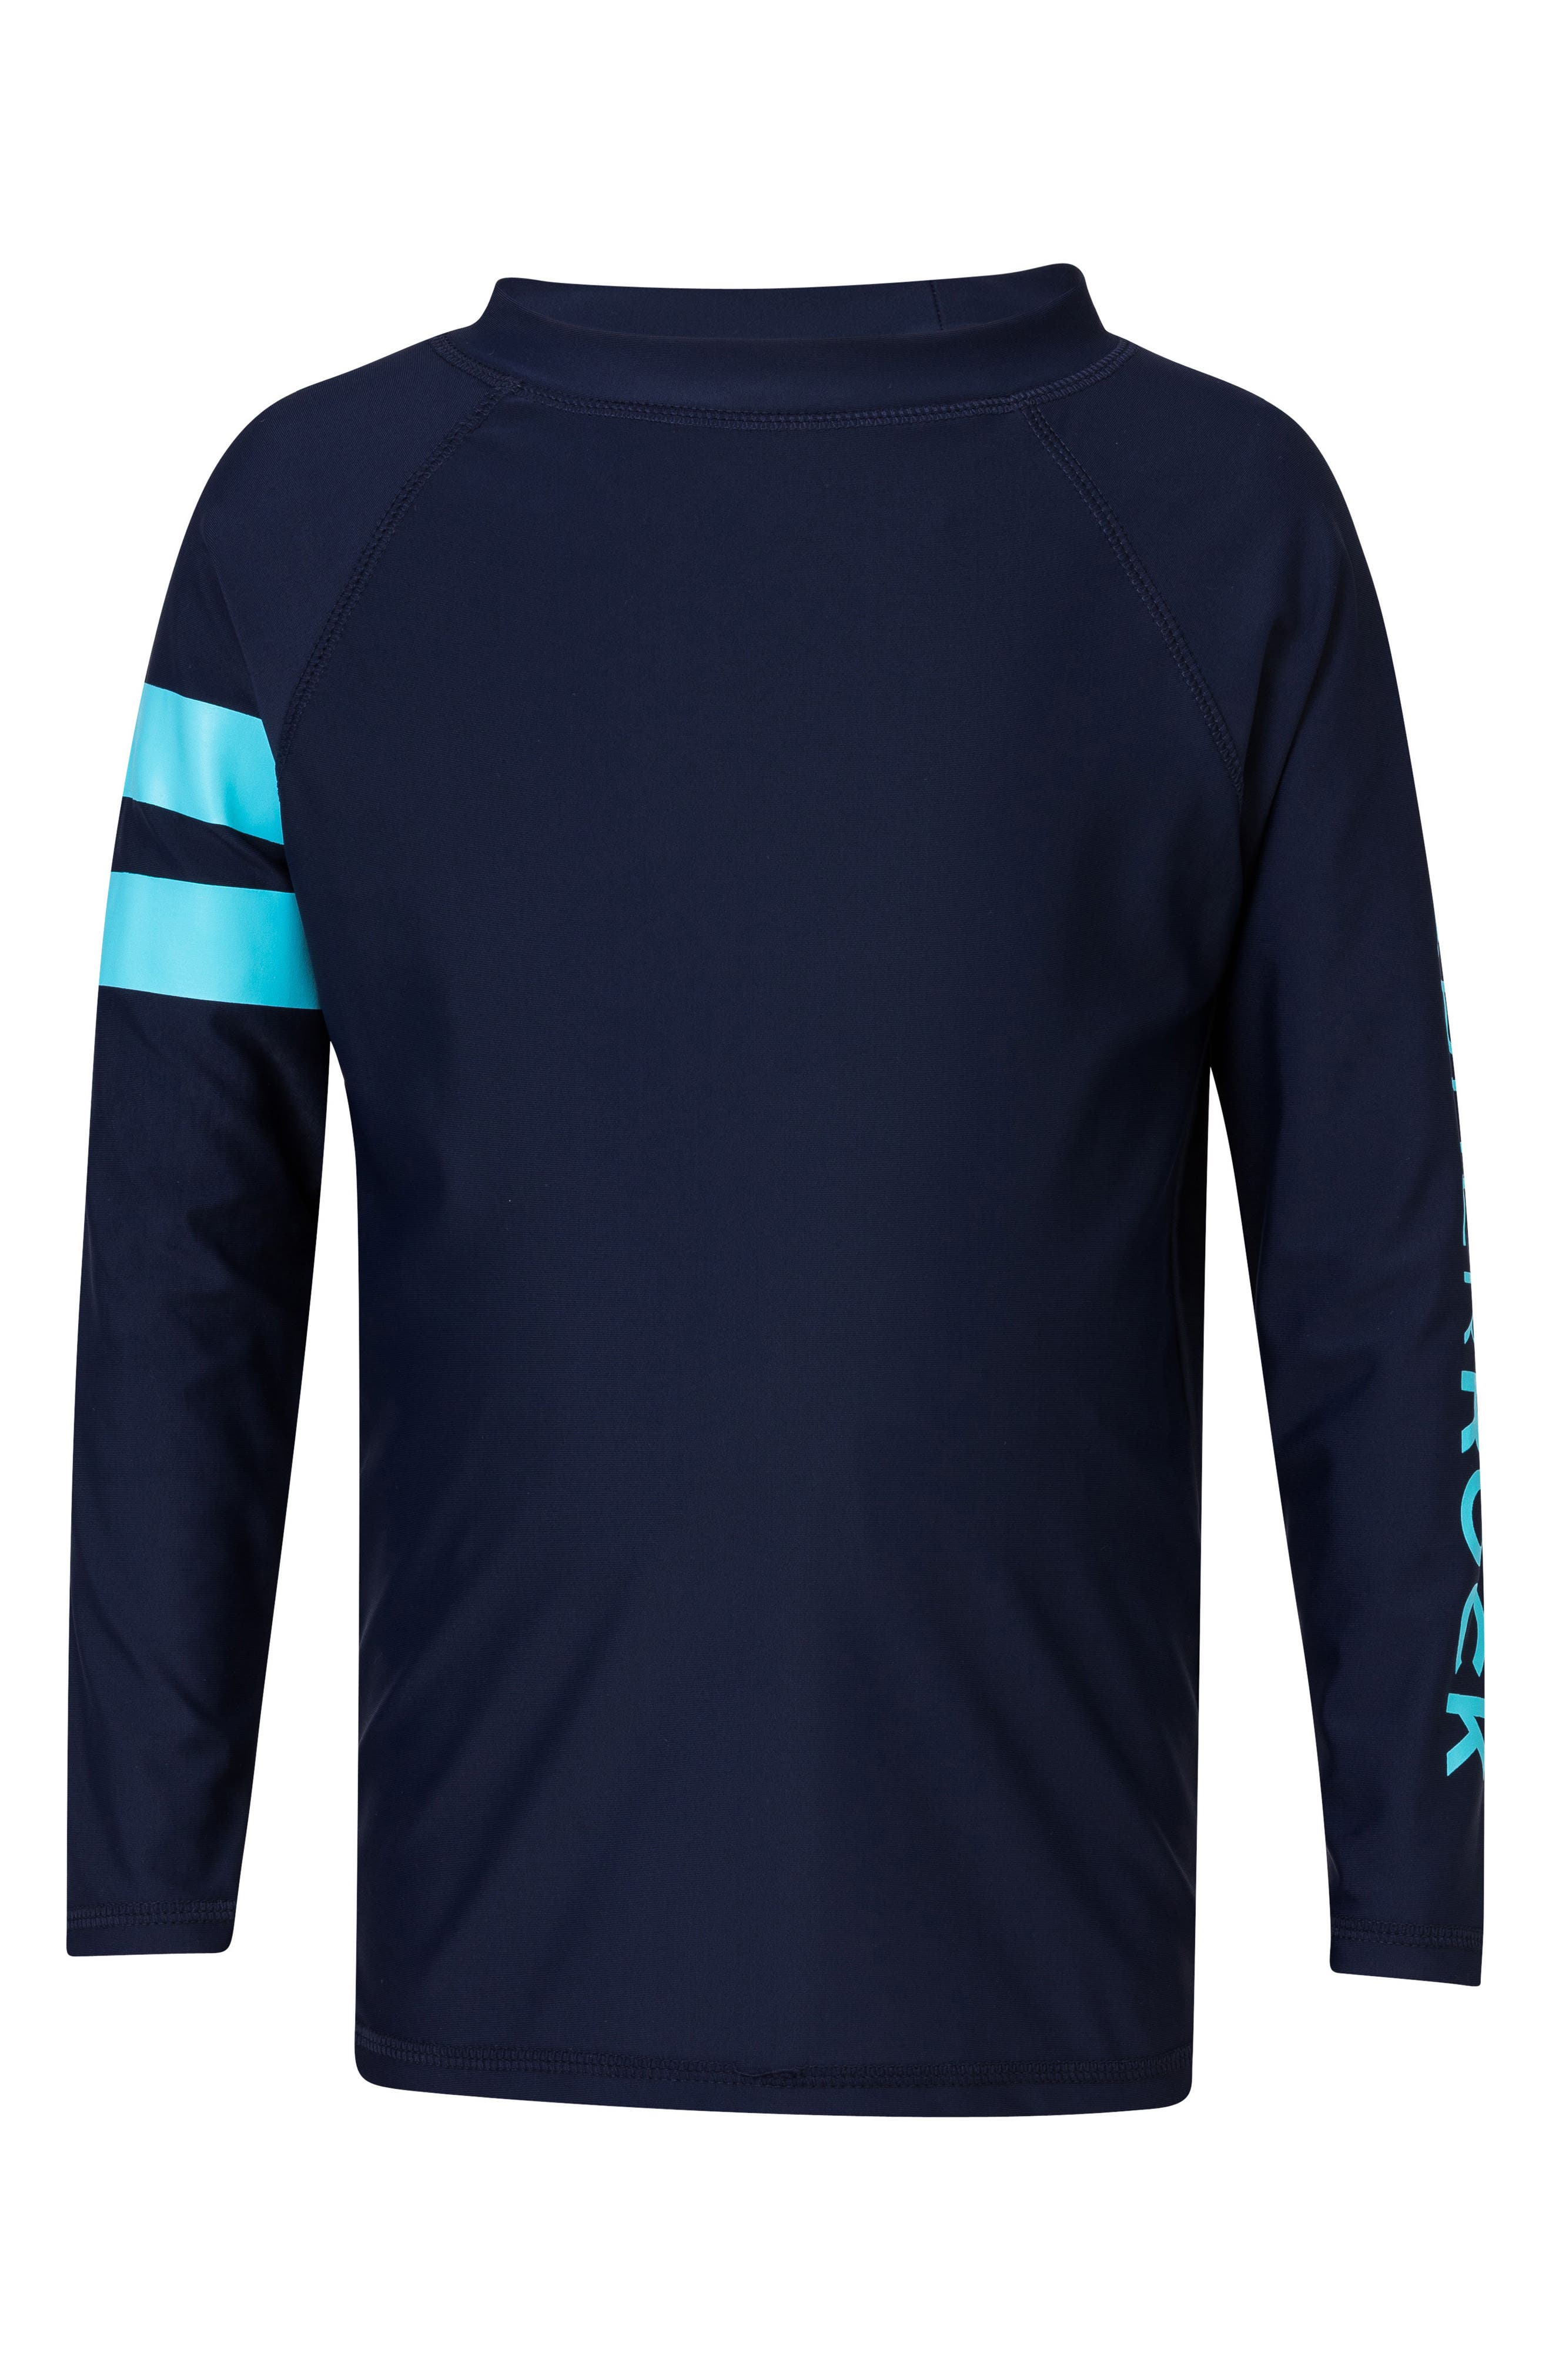 Raglan Long Sleeve Rashguard,                             Main thumbnail 1, color,                             NAVY/ LIGHT BLUE STRIPE